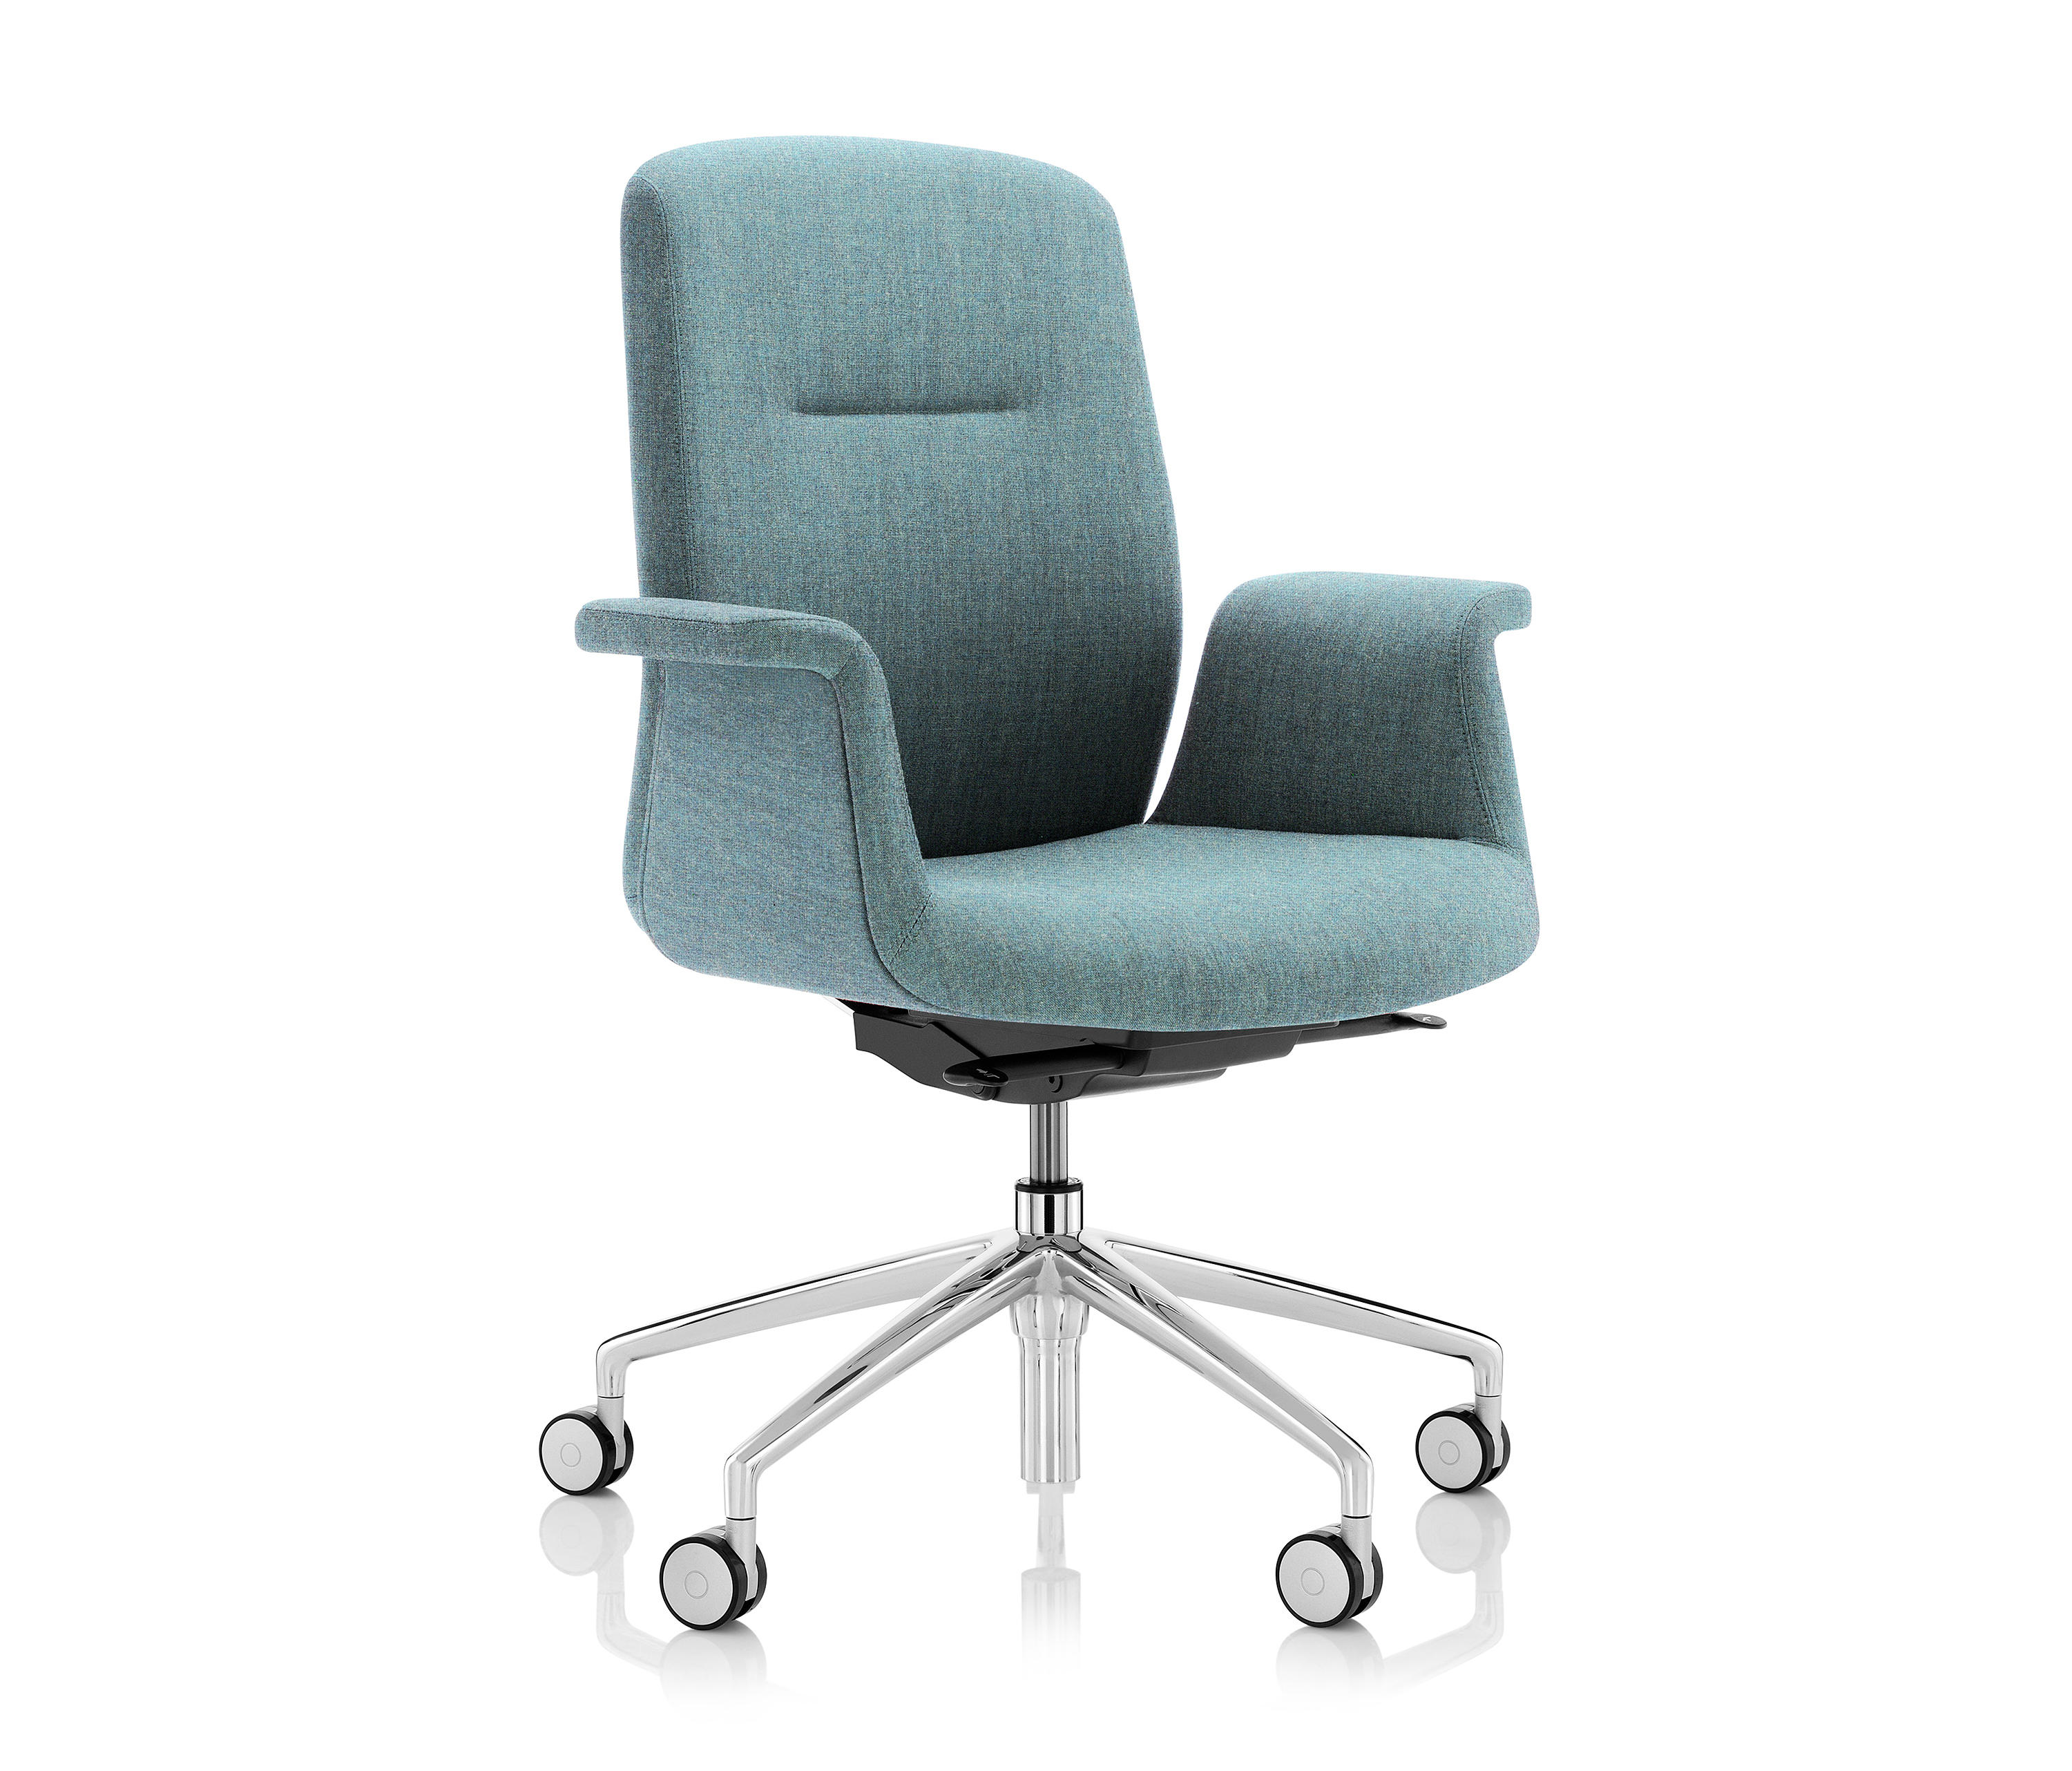 Office Chairs Near Me Mea Chair Office Chairs From Boss Design Architonic